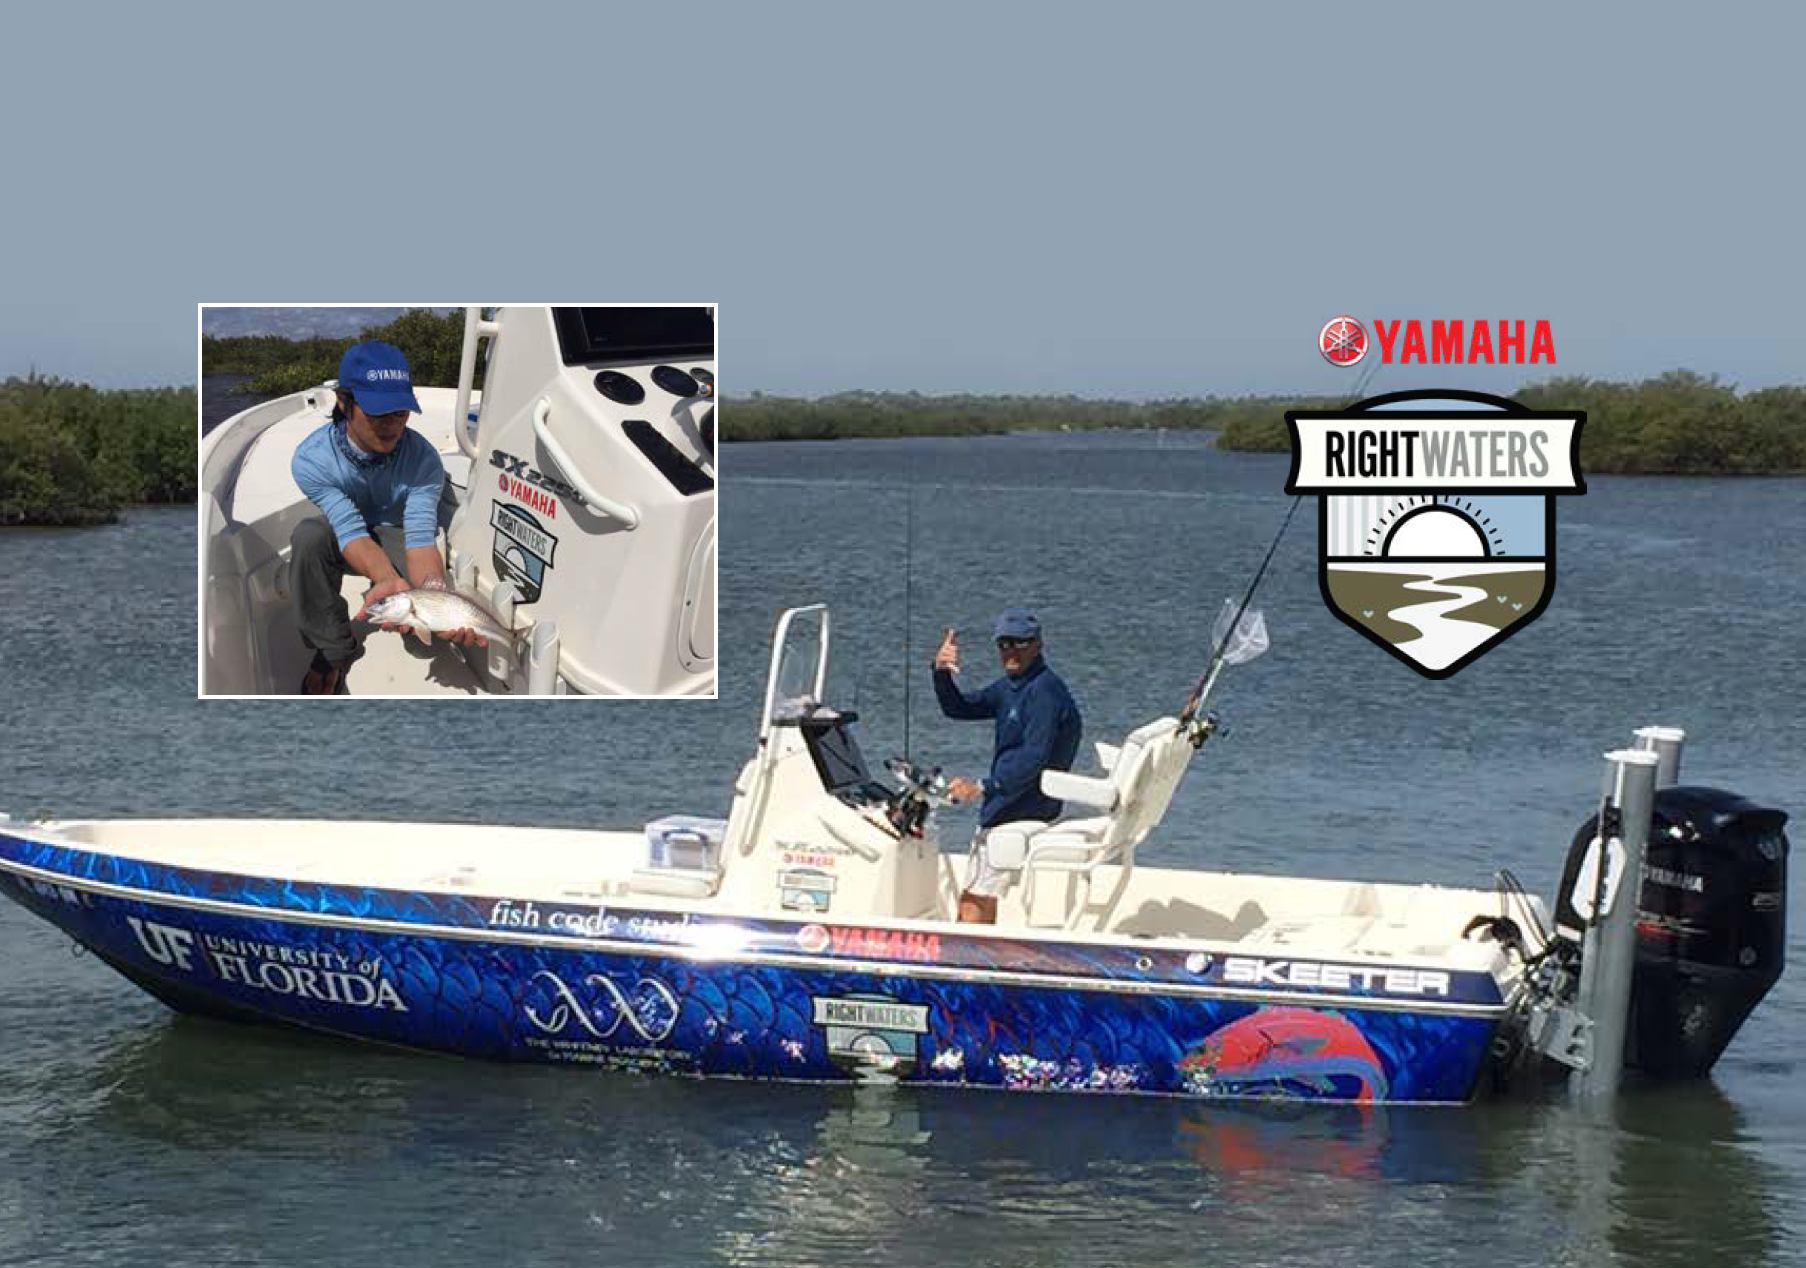 Yamaha Rightwaters™ Powers Redfish Study at University of Florida